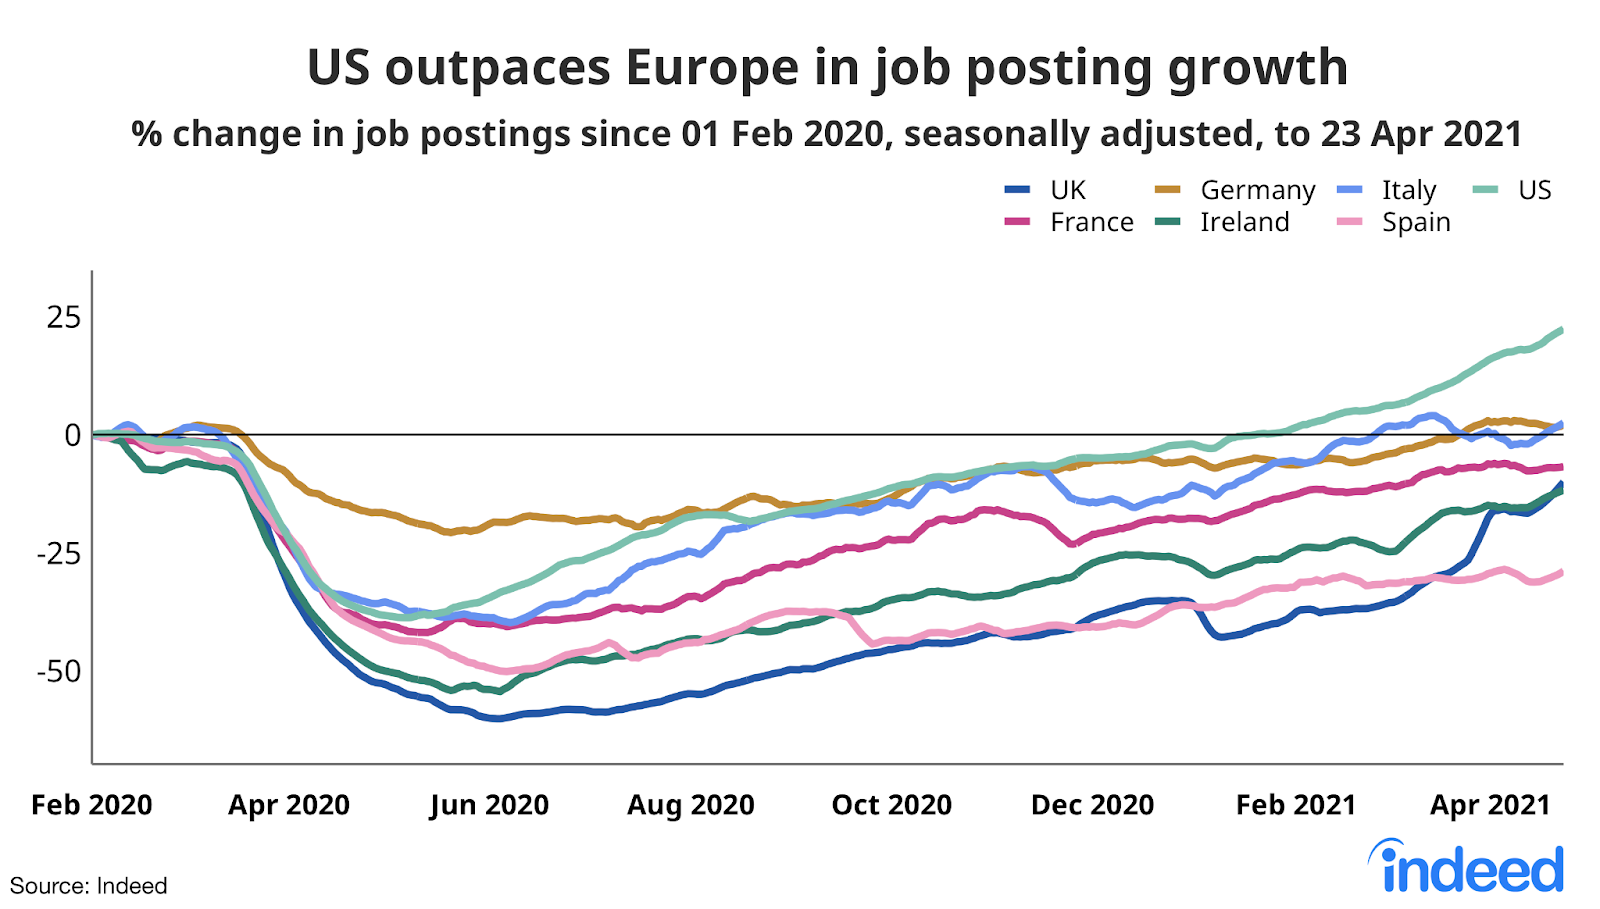 Line graph showing US outpaces Europe in job posting growth